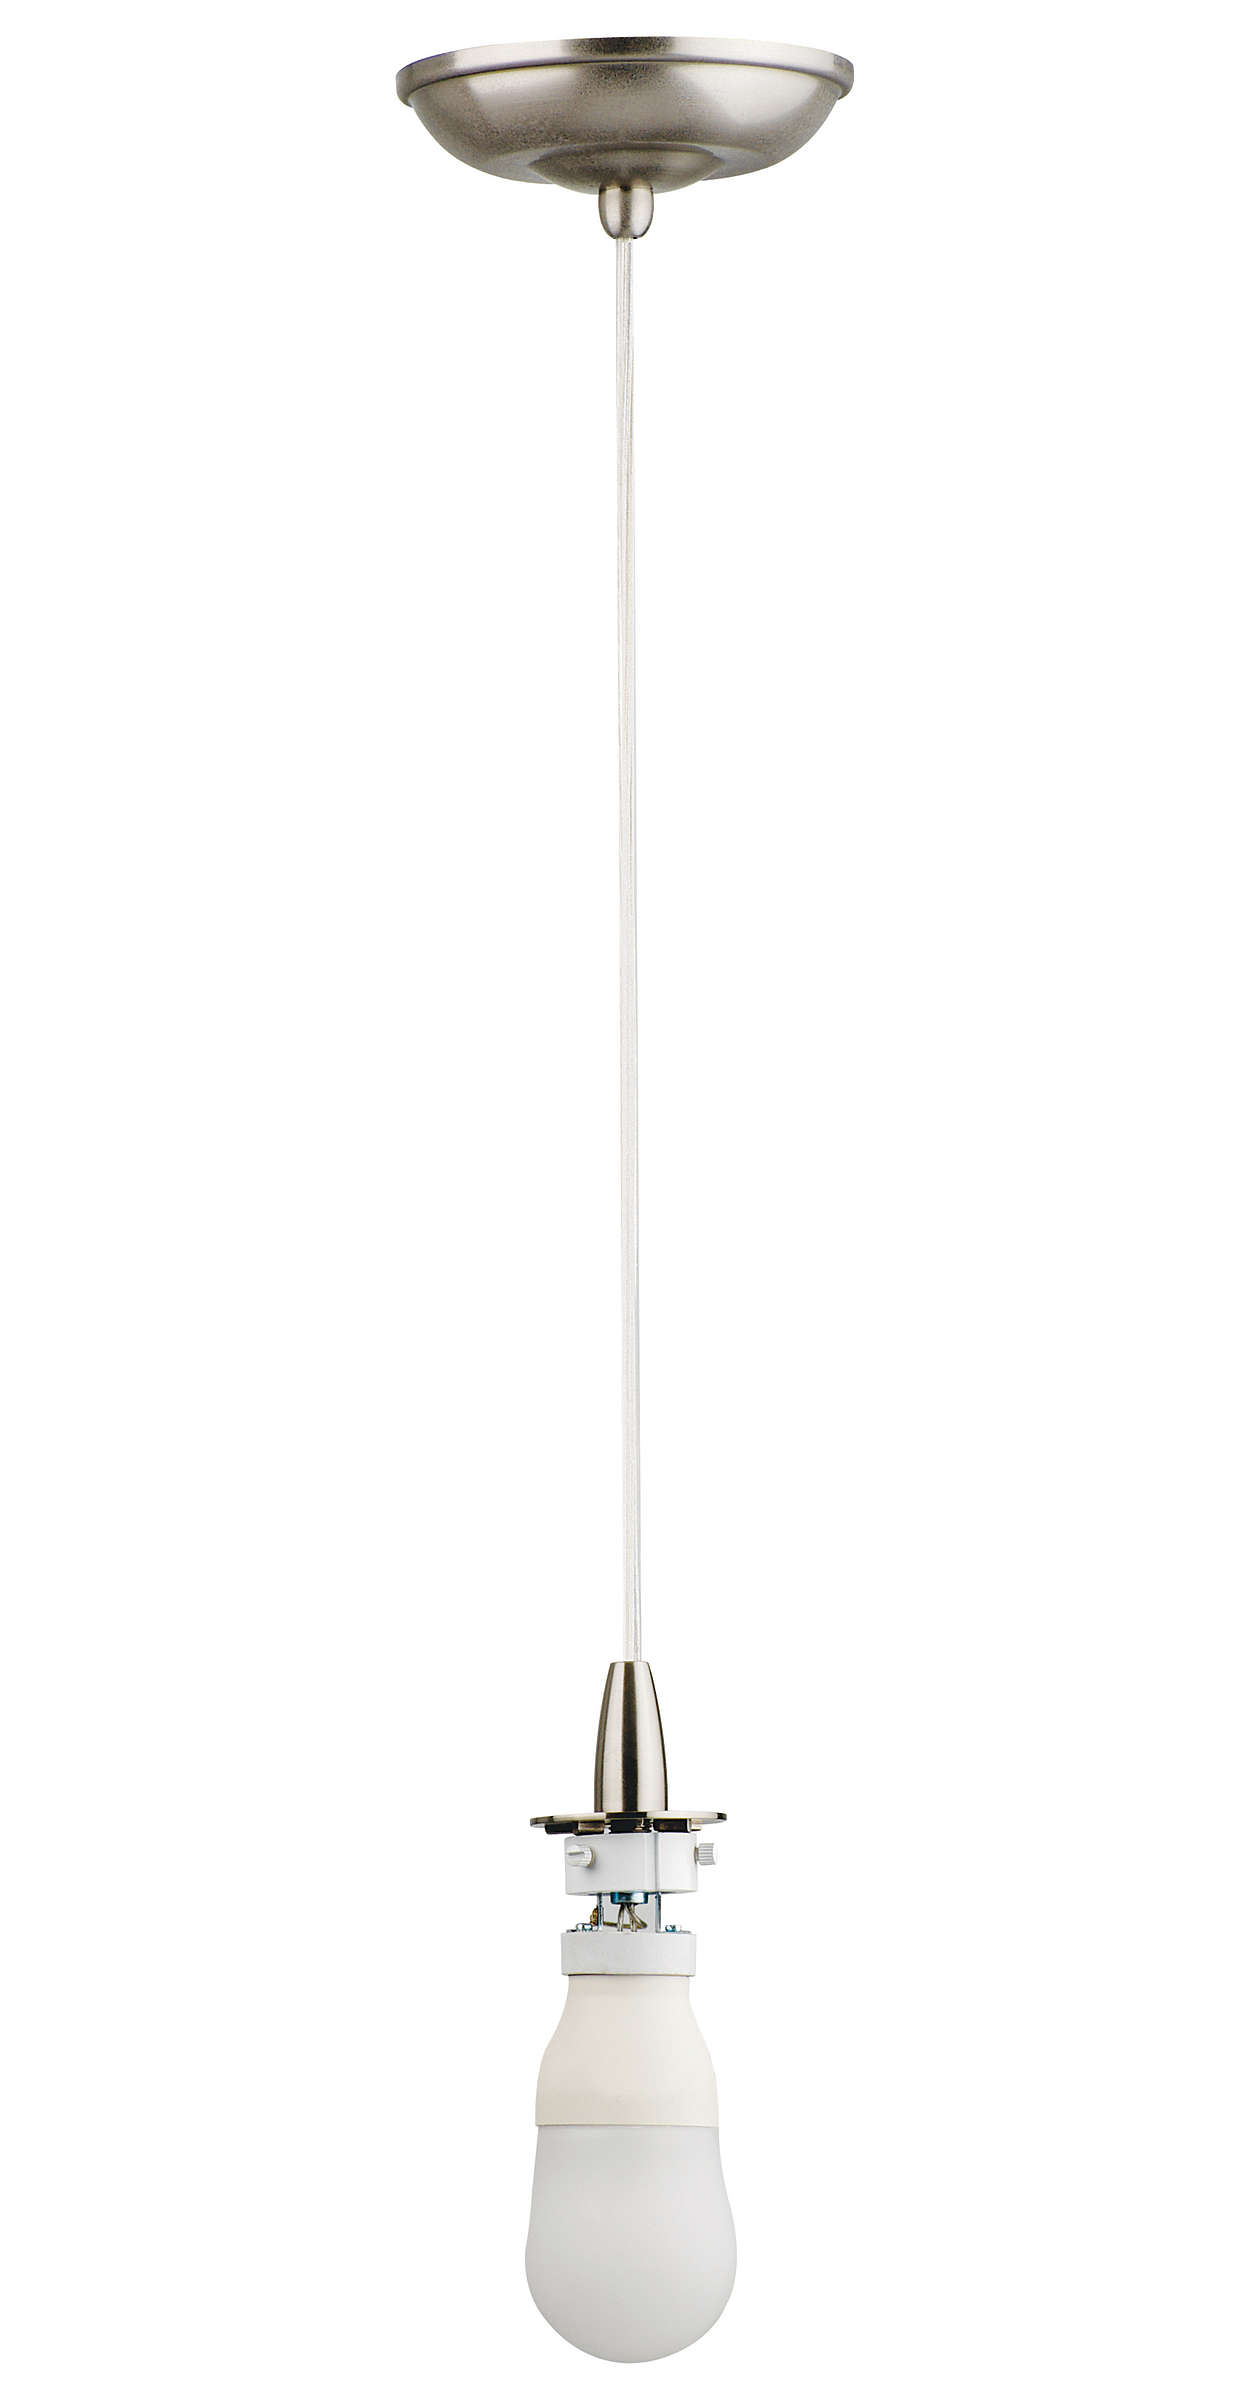 Suspension 1-light Pendant in Satin Nickel finish